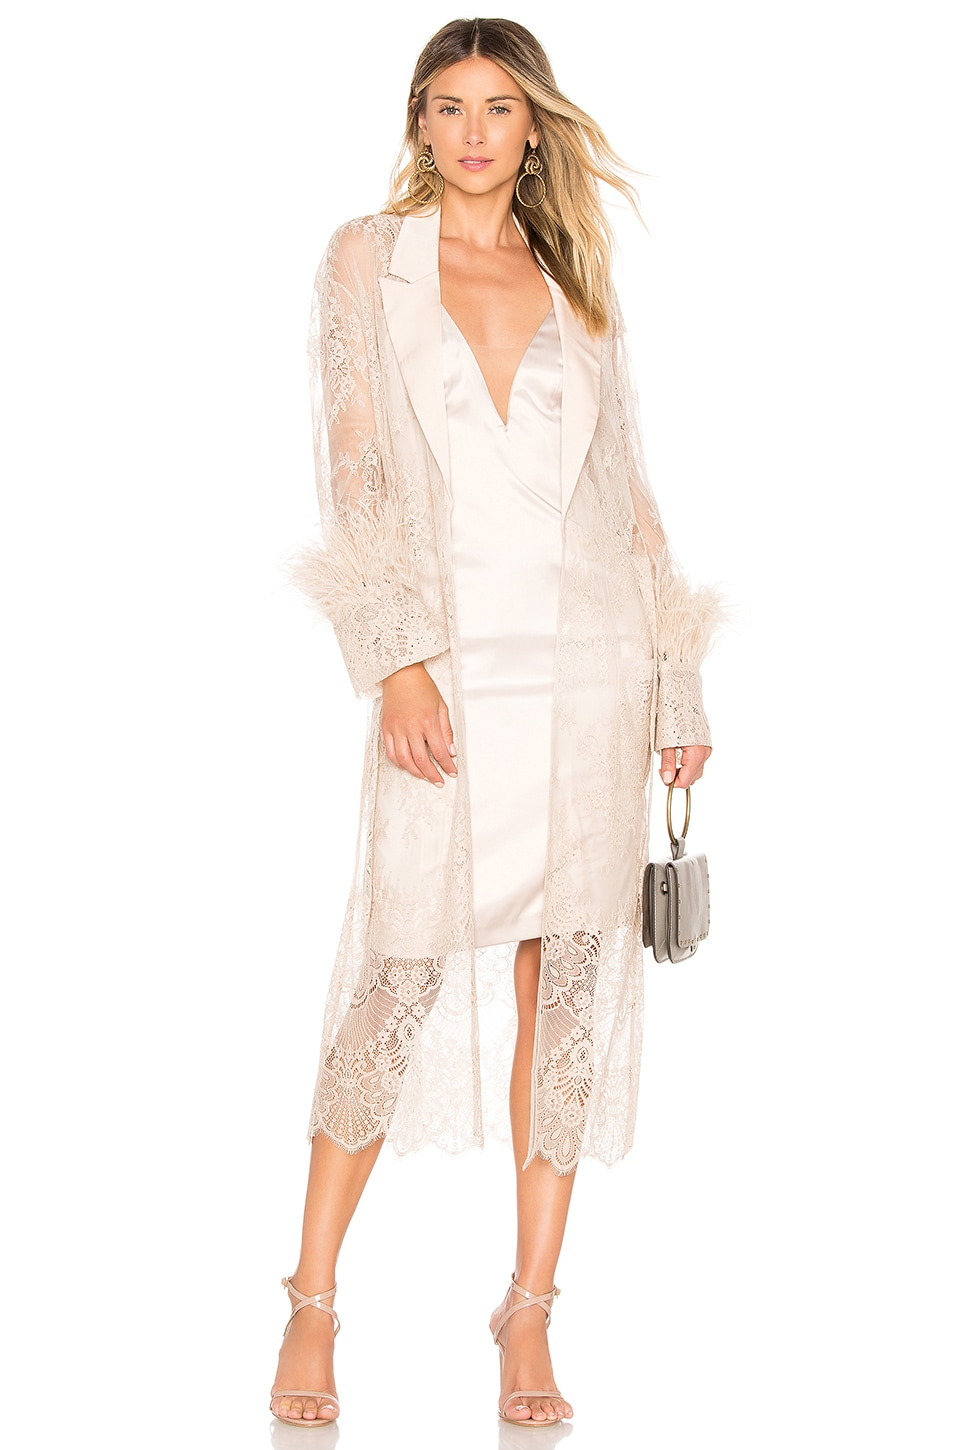 CHRISSY TEIGEN X Revolve Jet Lagged Bed Jacket in Cream